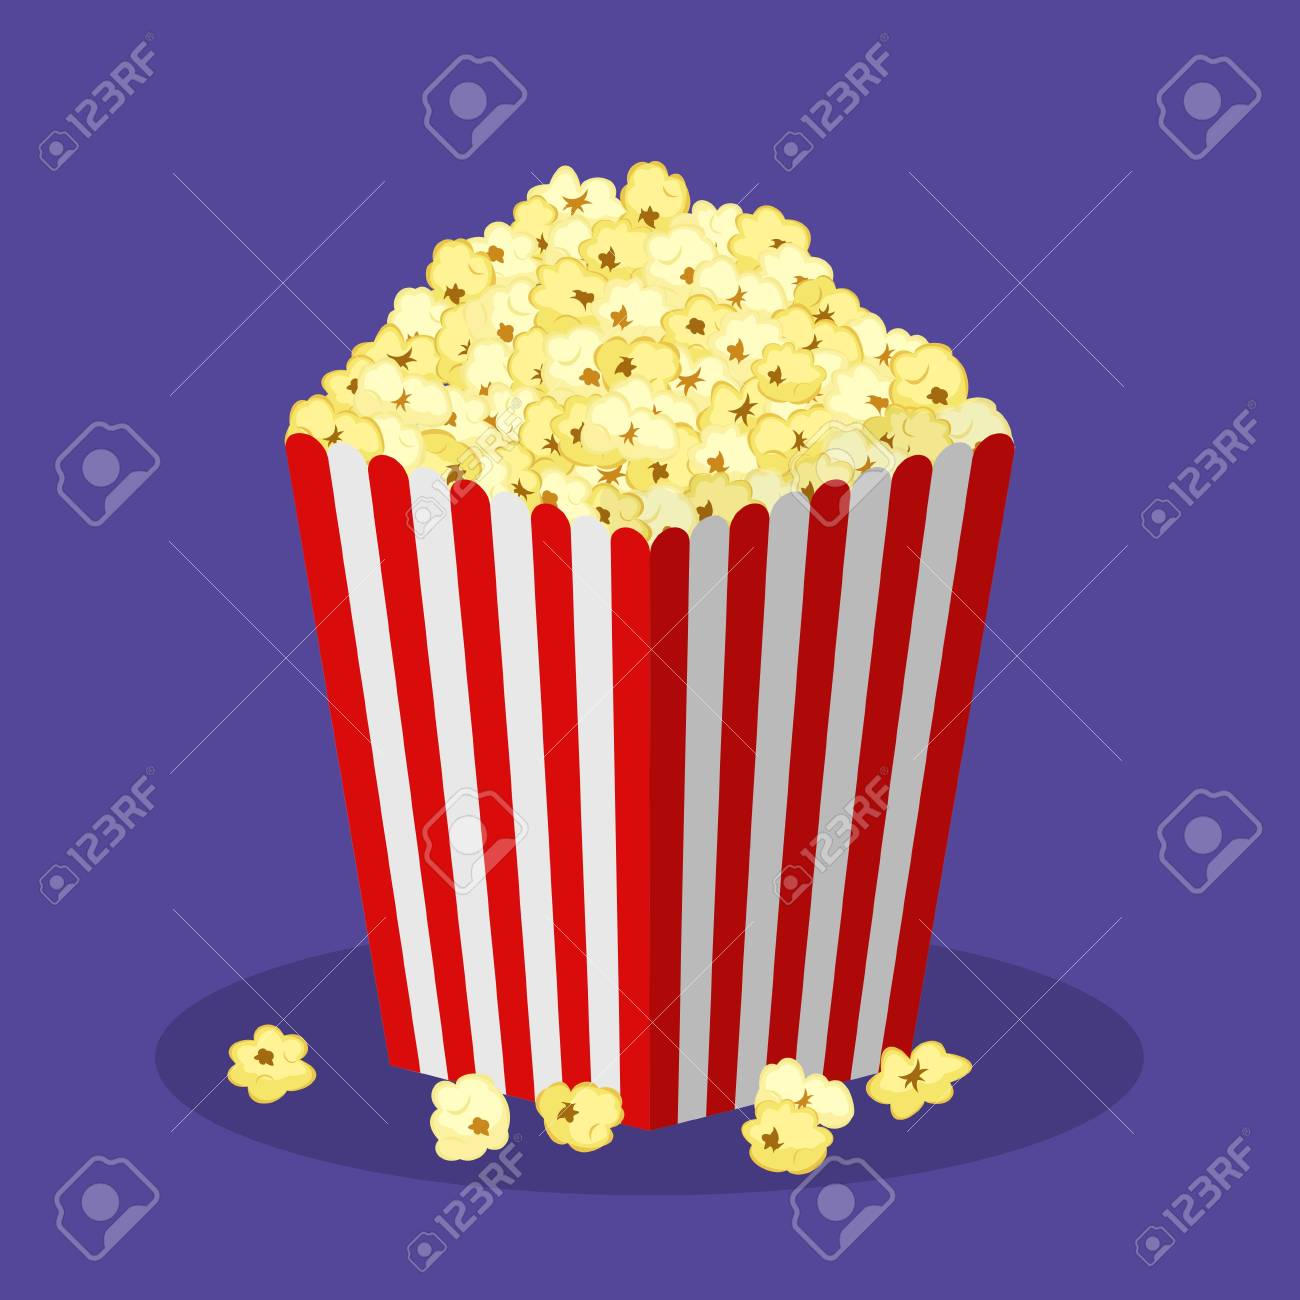 White And Red Striped Paper Popcorn Bag Isolated On Background Royalty Free Cliparts Vectors And Stock Illustration Image 91390480